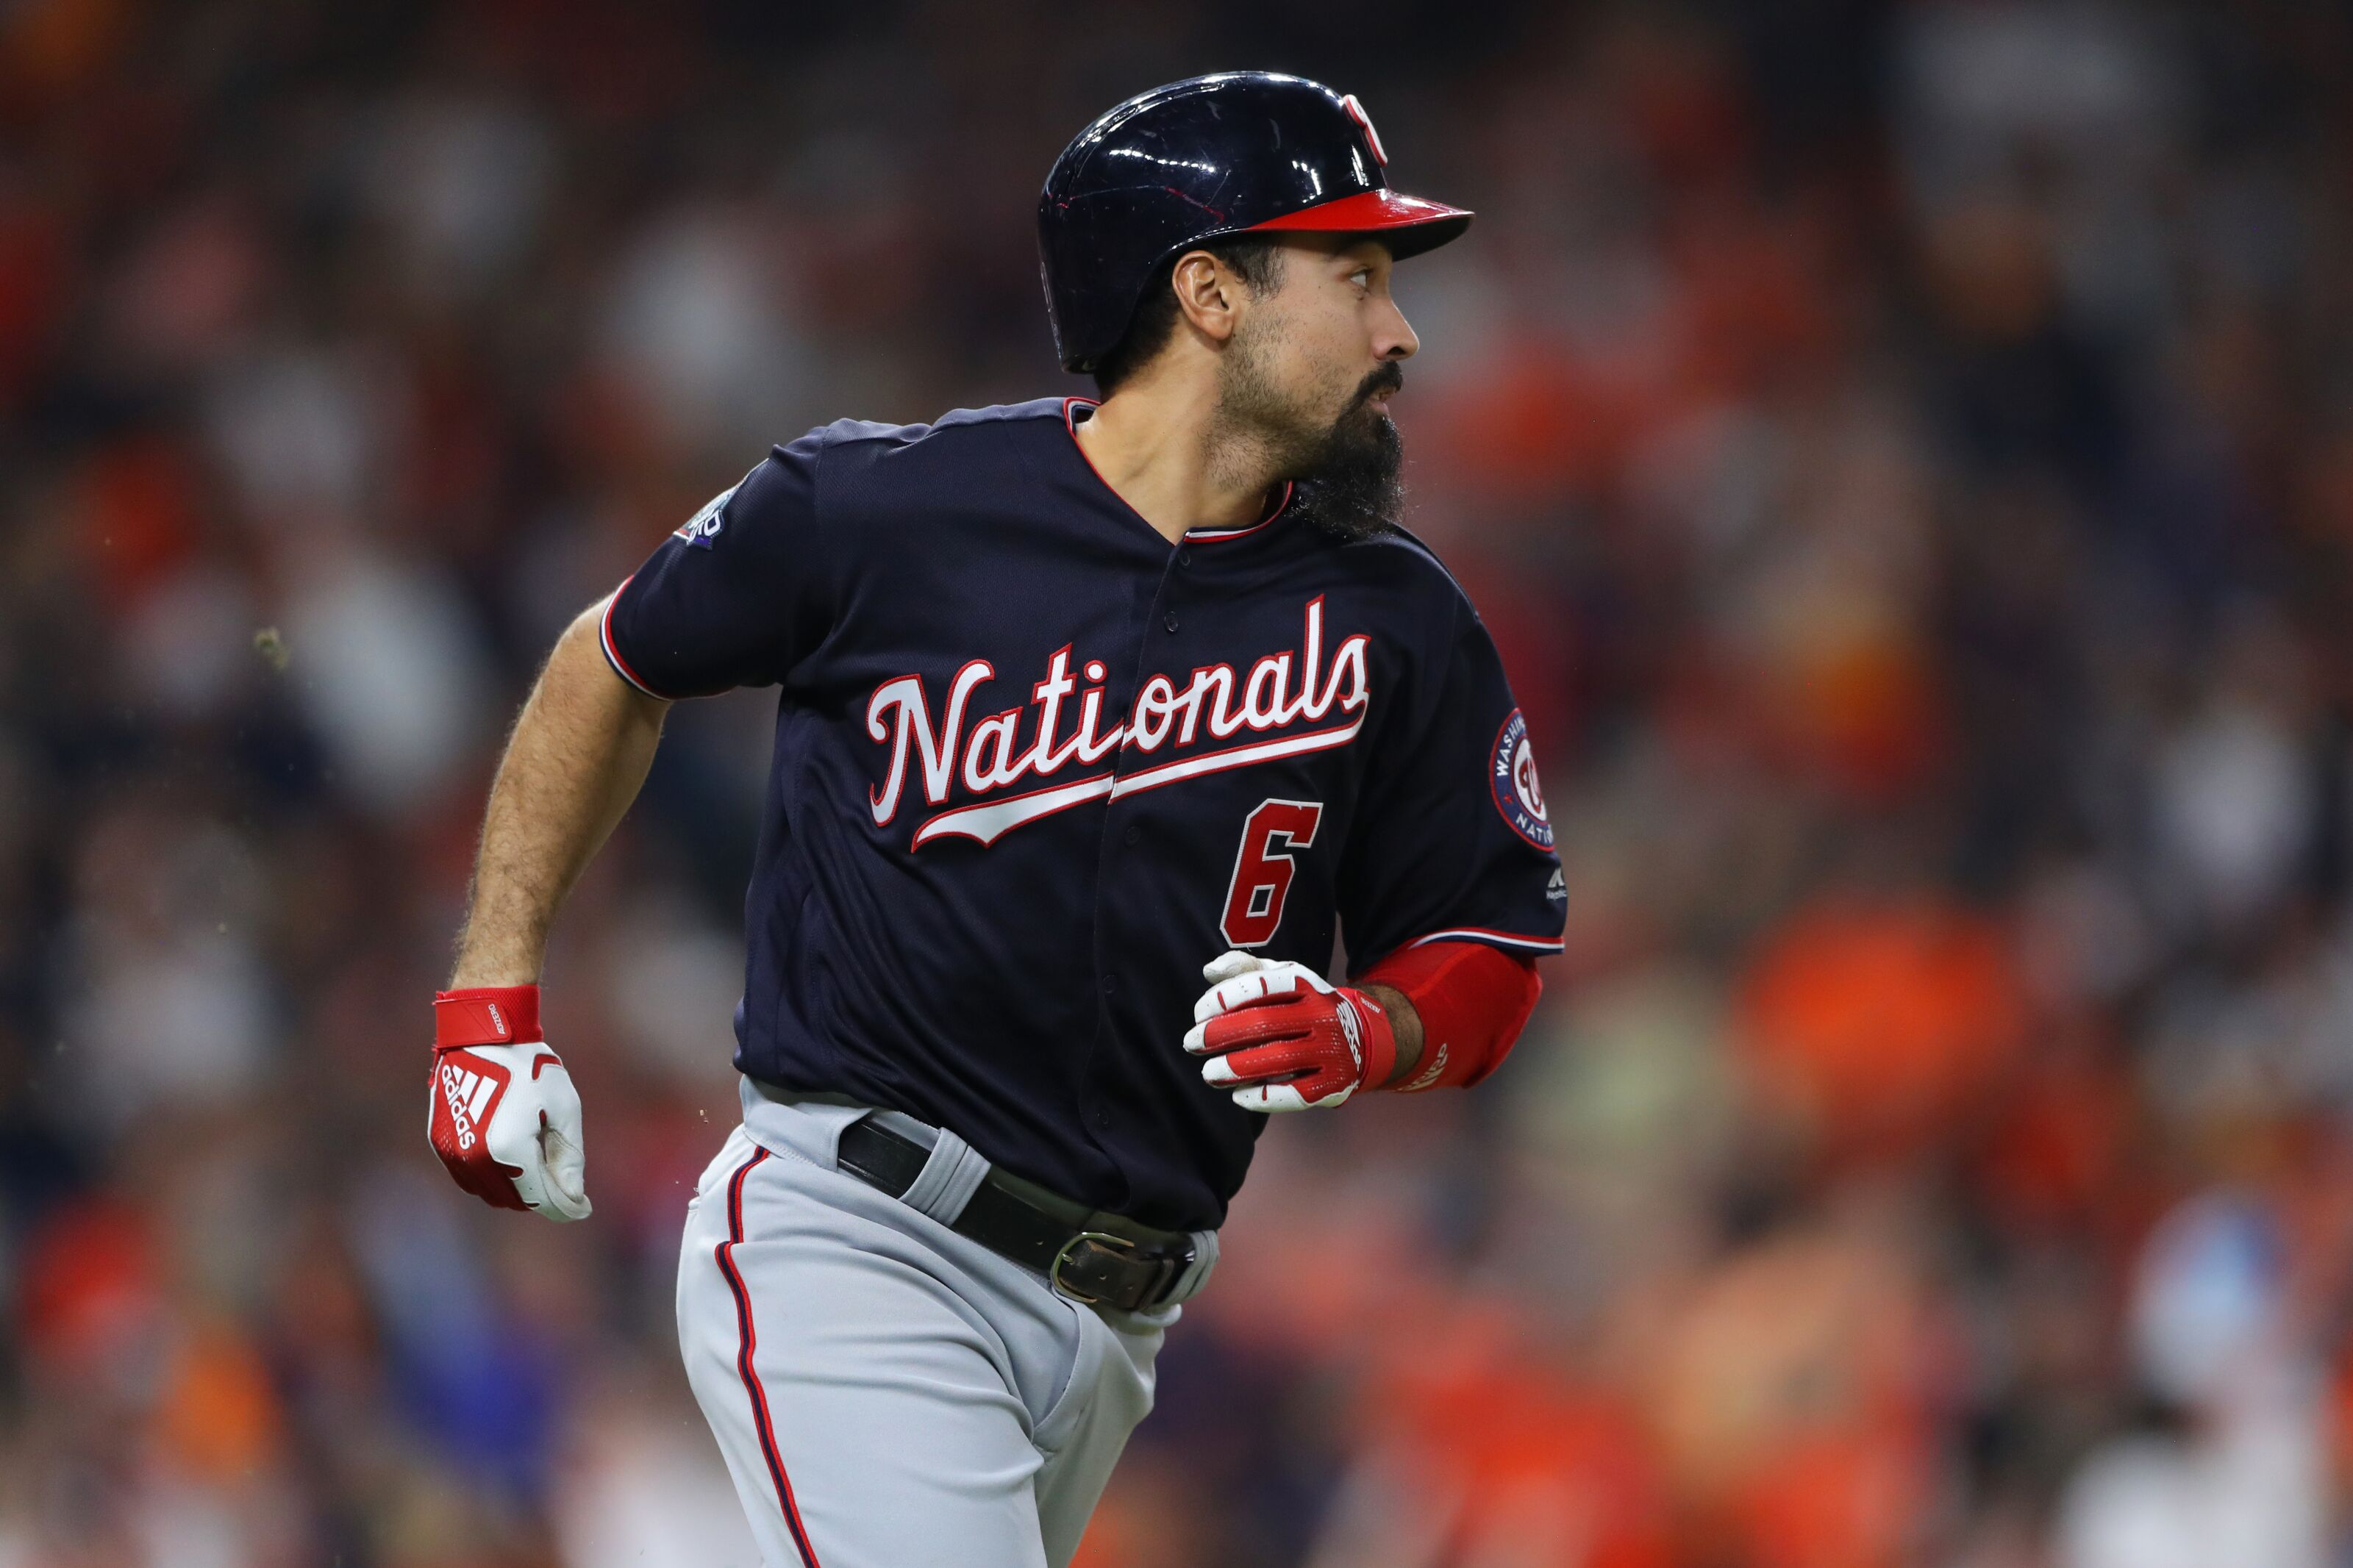 Phillies Likely Out of Running for 3B Anthony Rendon